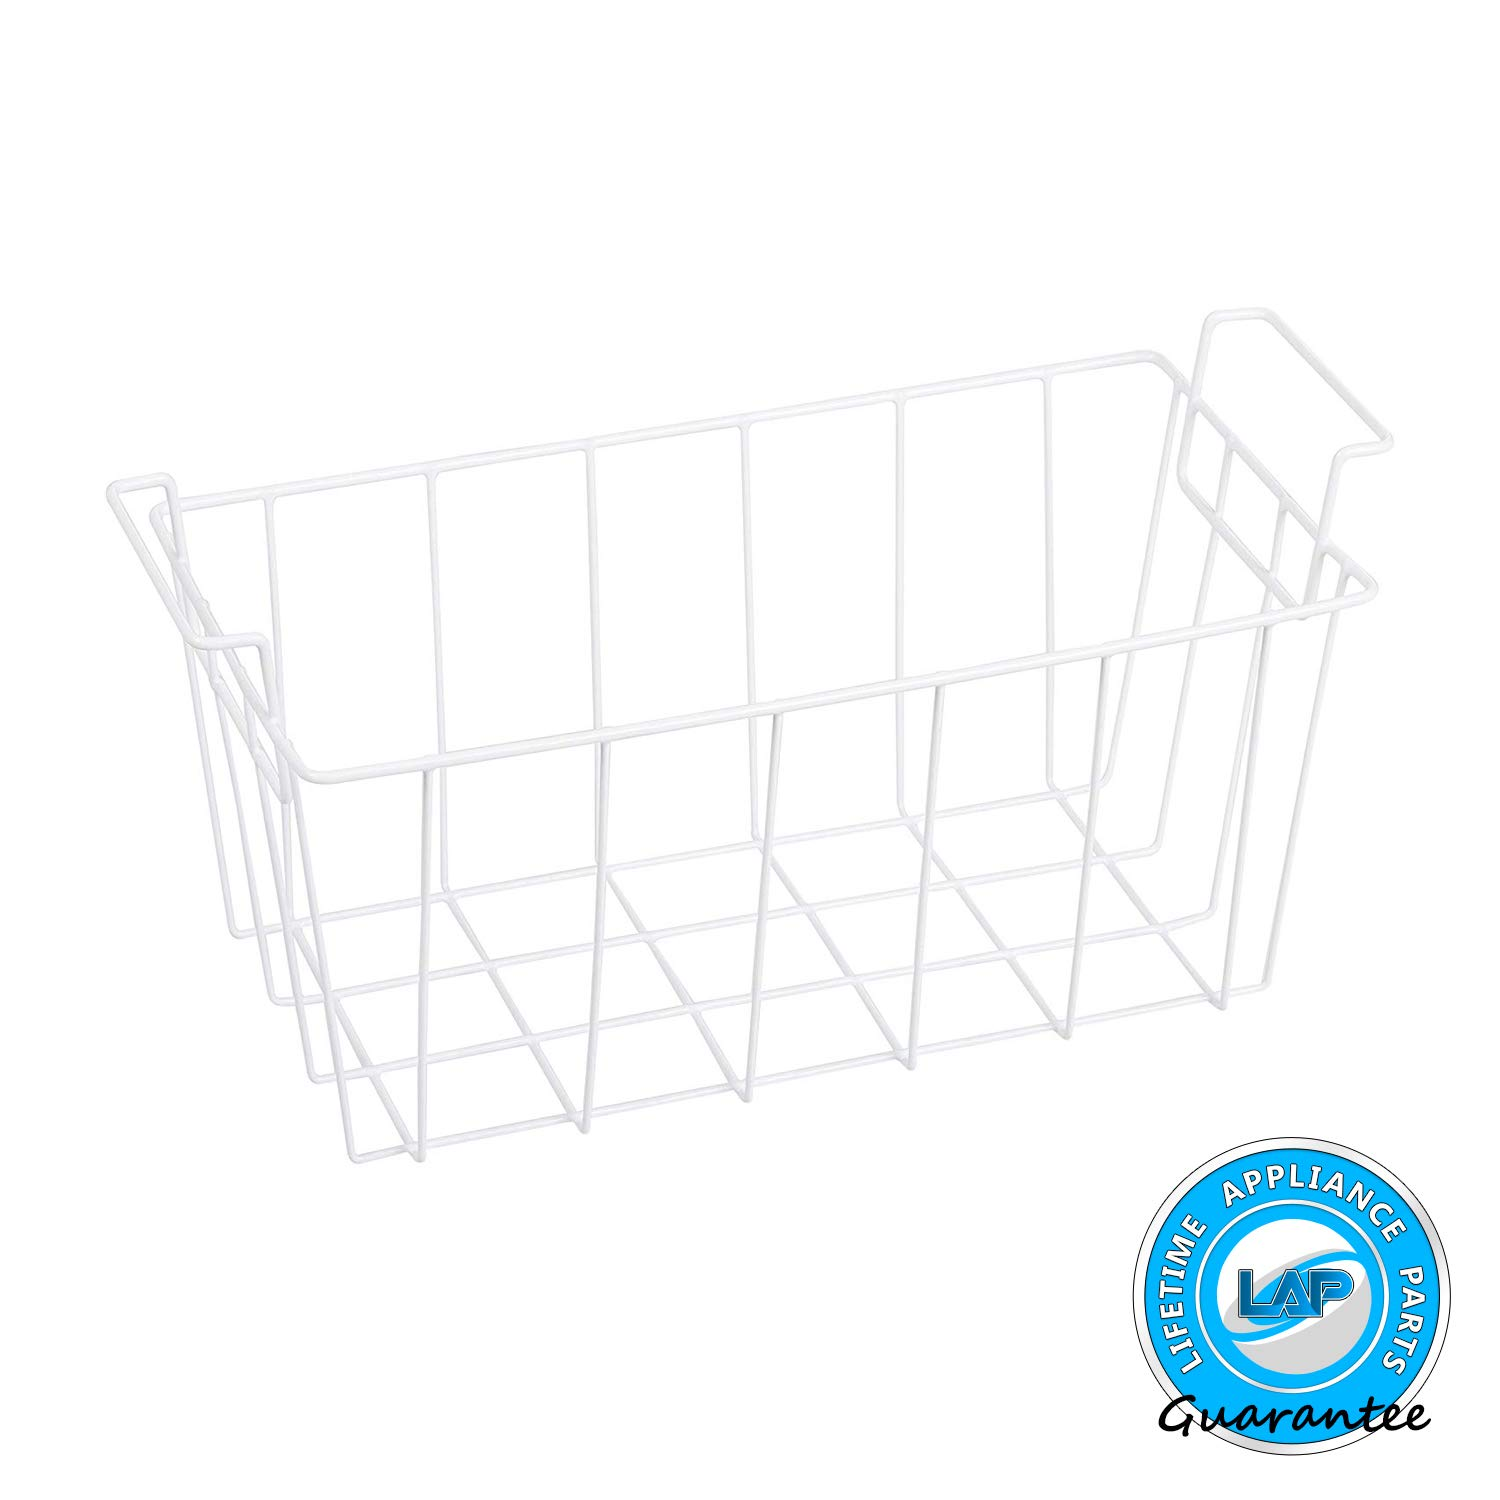 WR21X10208 Freezer Basket for GE Refrigerator